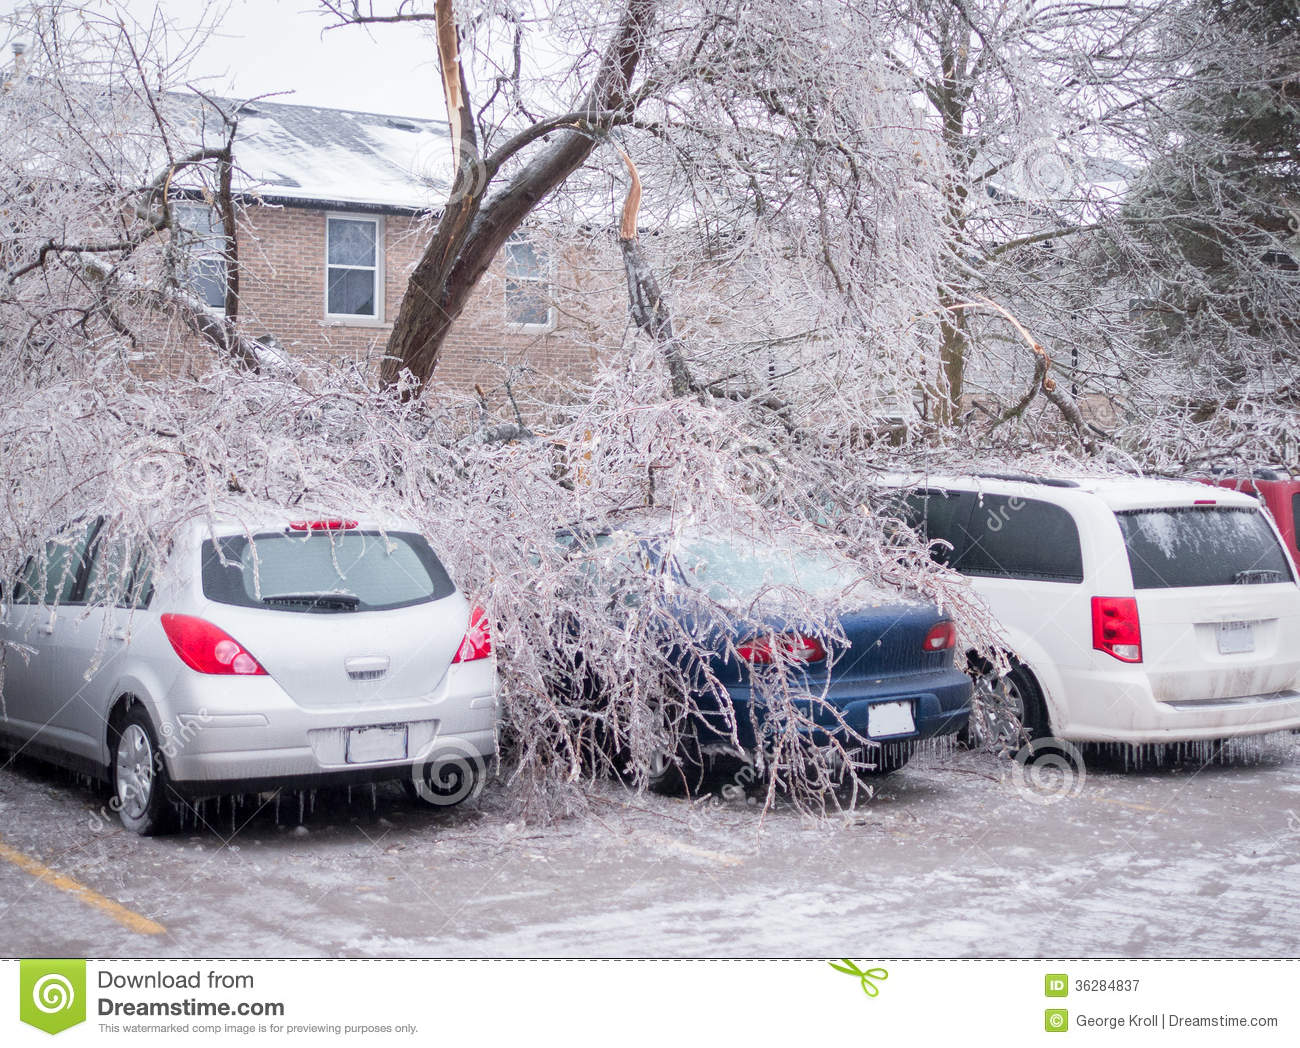 Trees which have fallen onto cars in a parking lot due to the extreme